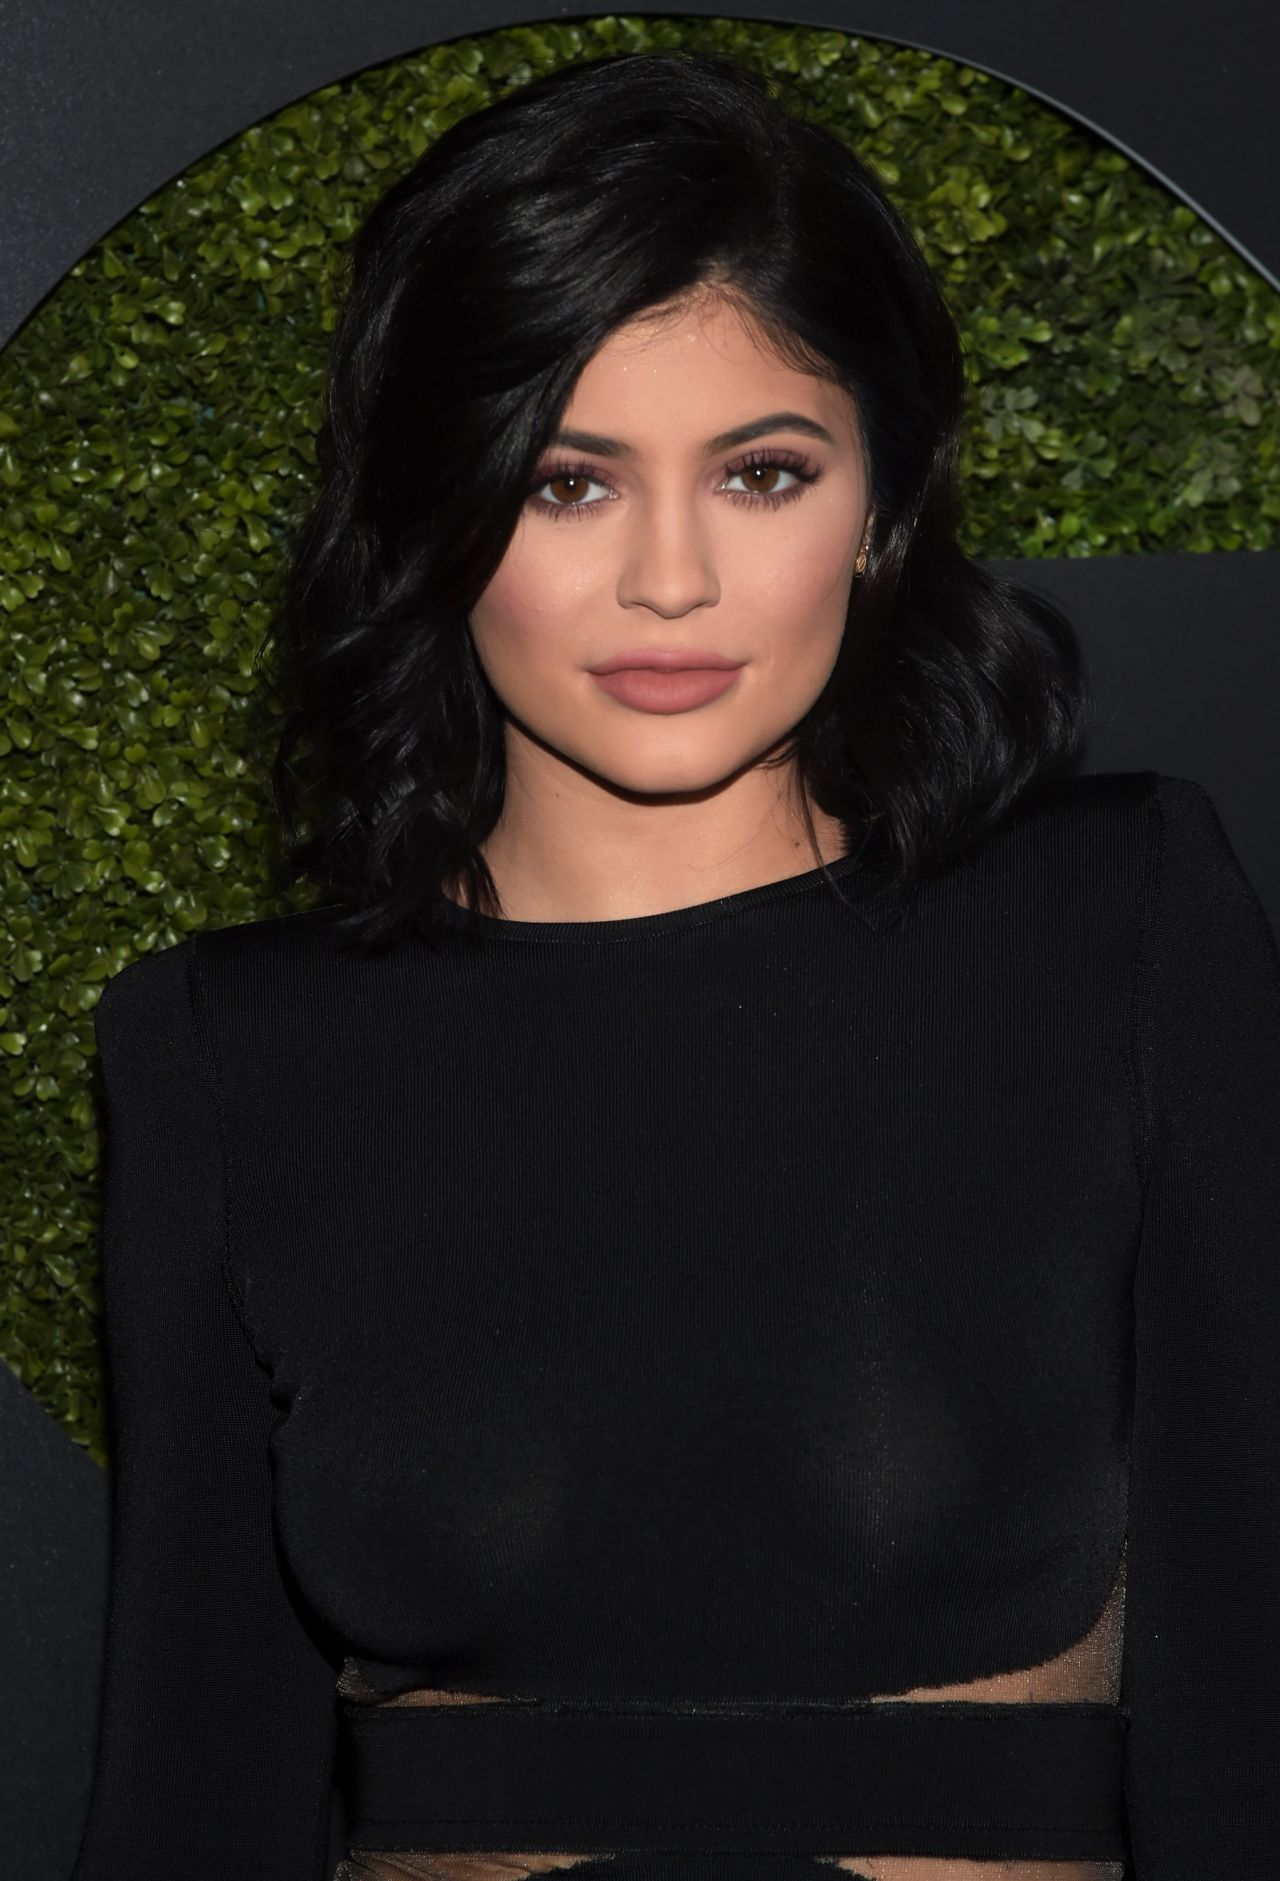 Kylie Jenner Lip Kit Are Colourpop Lipsticks: 2015 GQ Men Of The Year Party In Los Angeles